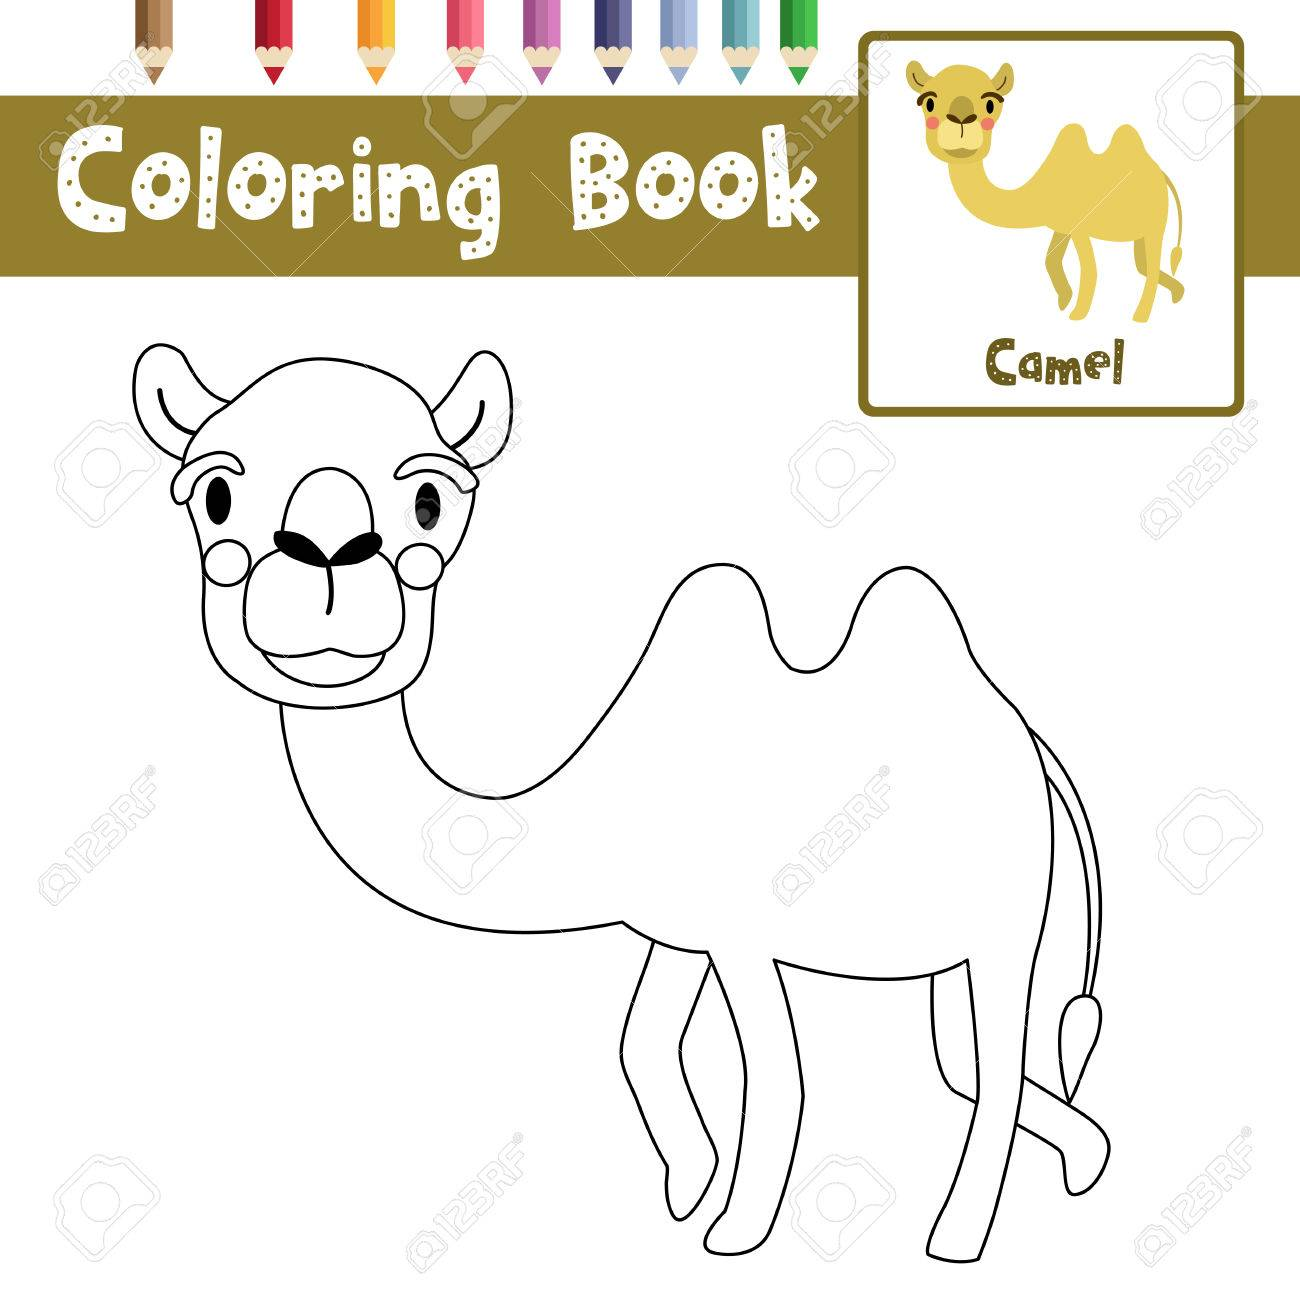 Coloring Page Of Bactrian Camel Animals For Preschool Kids Activity Educational Worksheet Vector Illustration